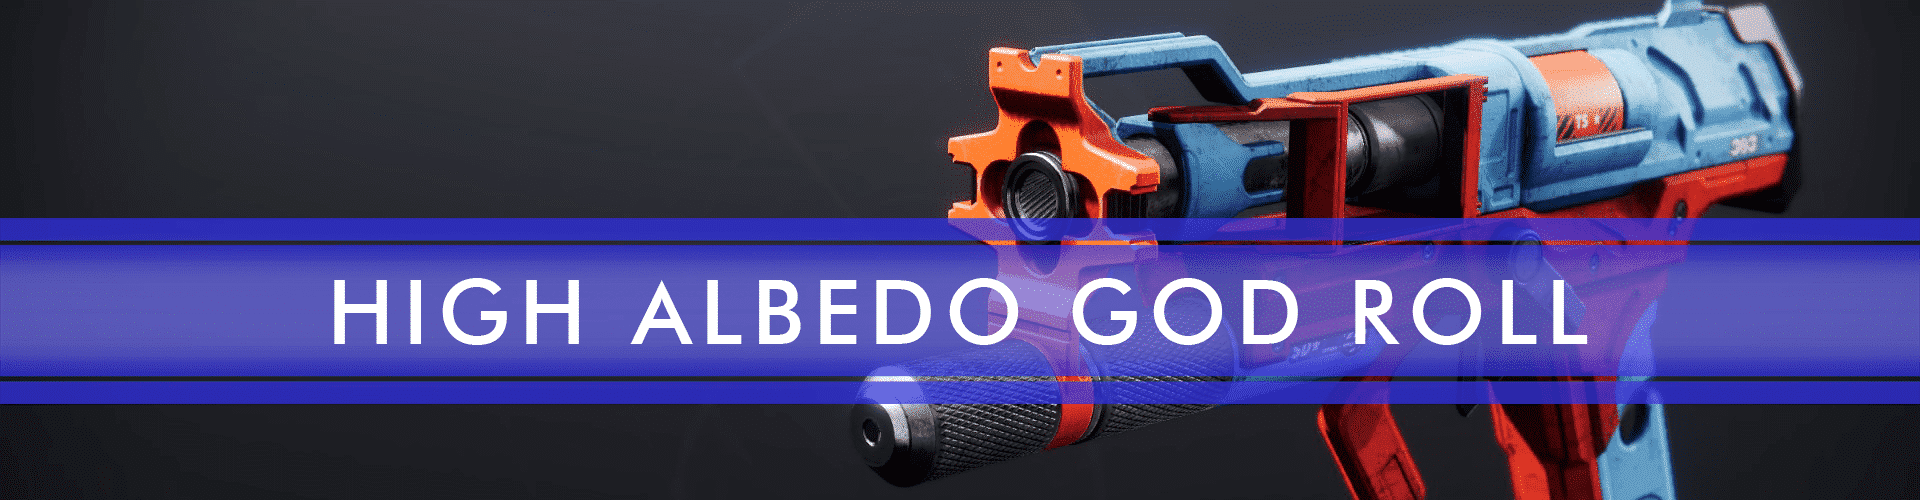 high albedo god roll boost